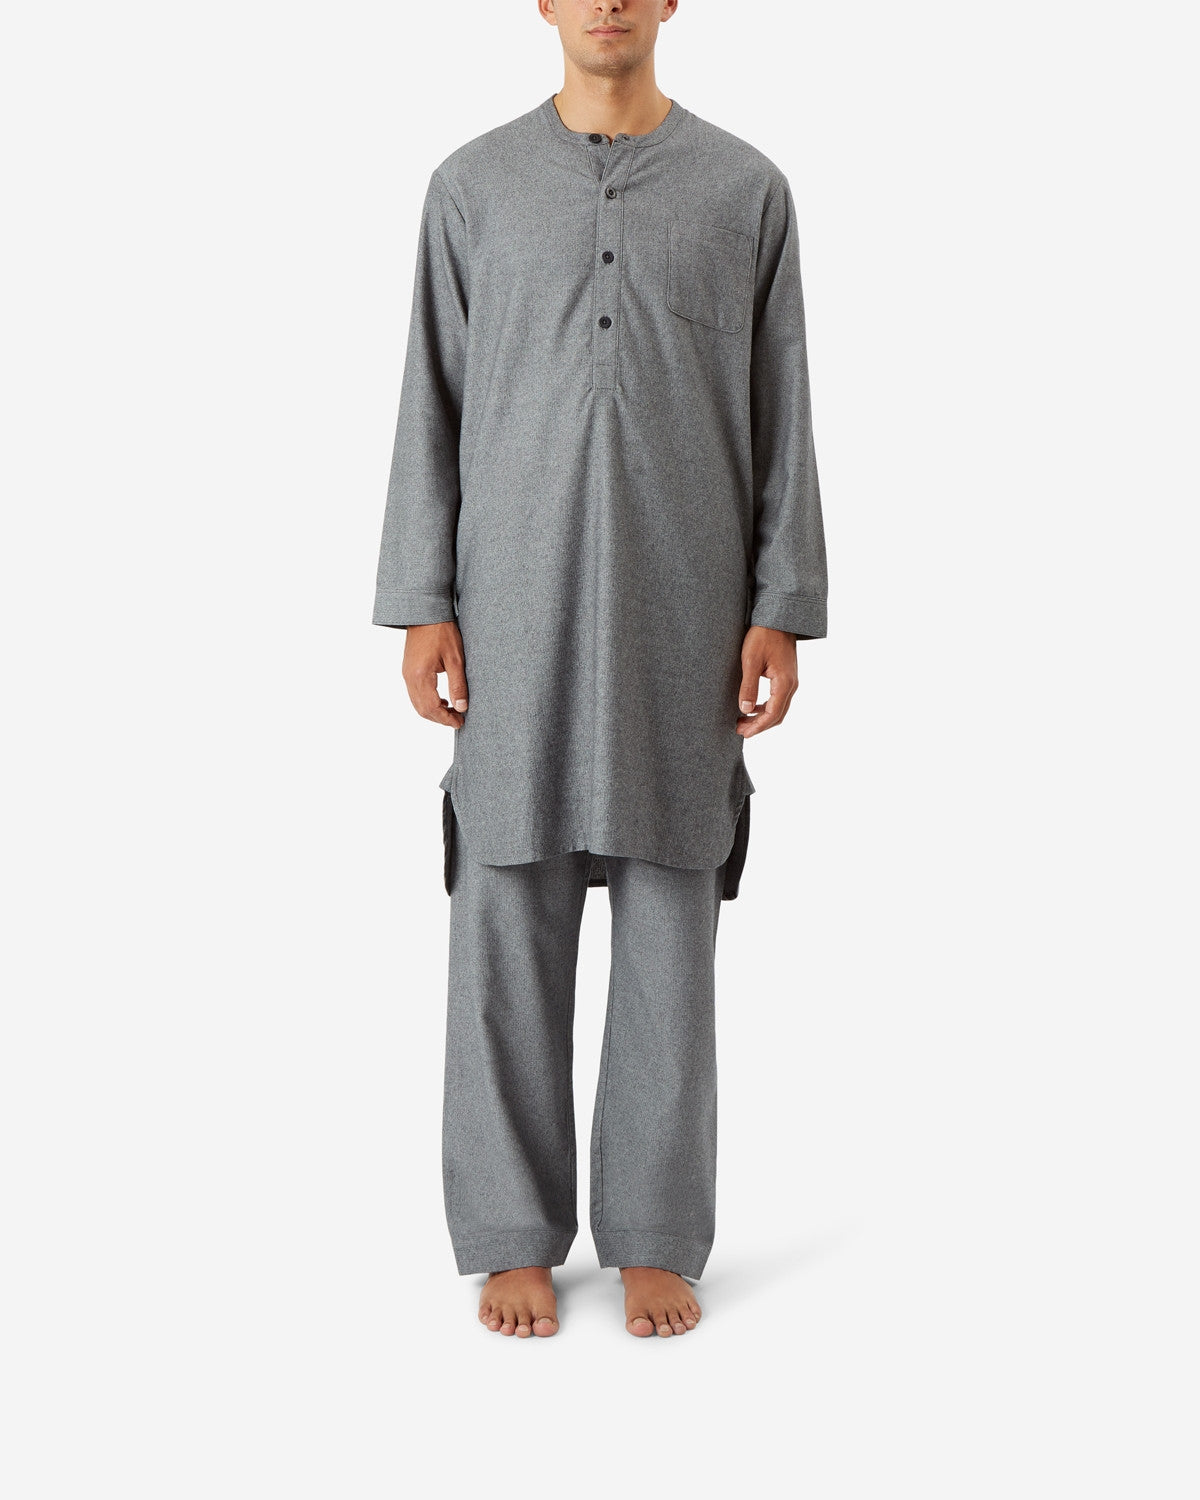 GREY FINE HERRINGBONE COTTON NIGHTSHIRT